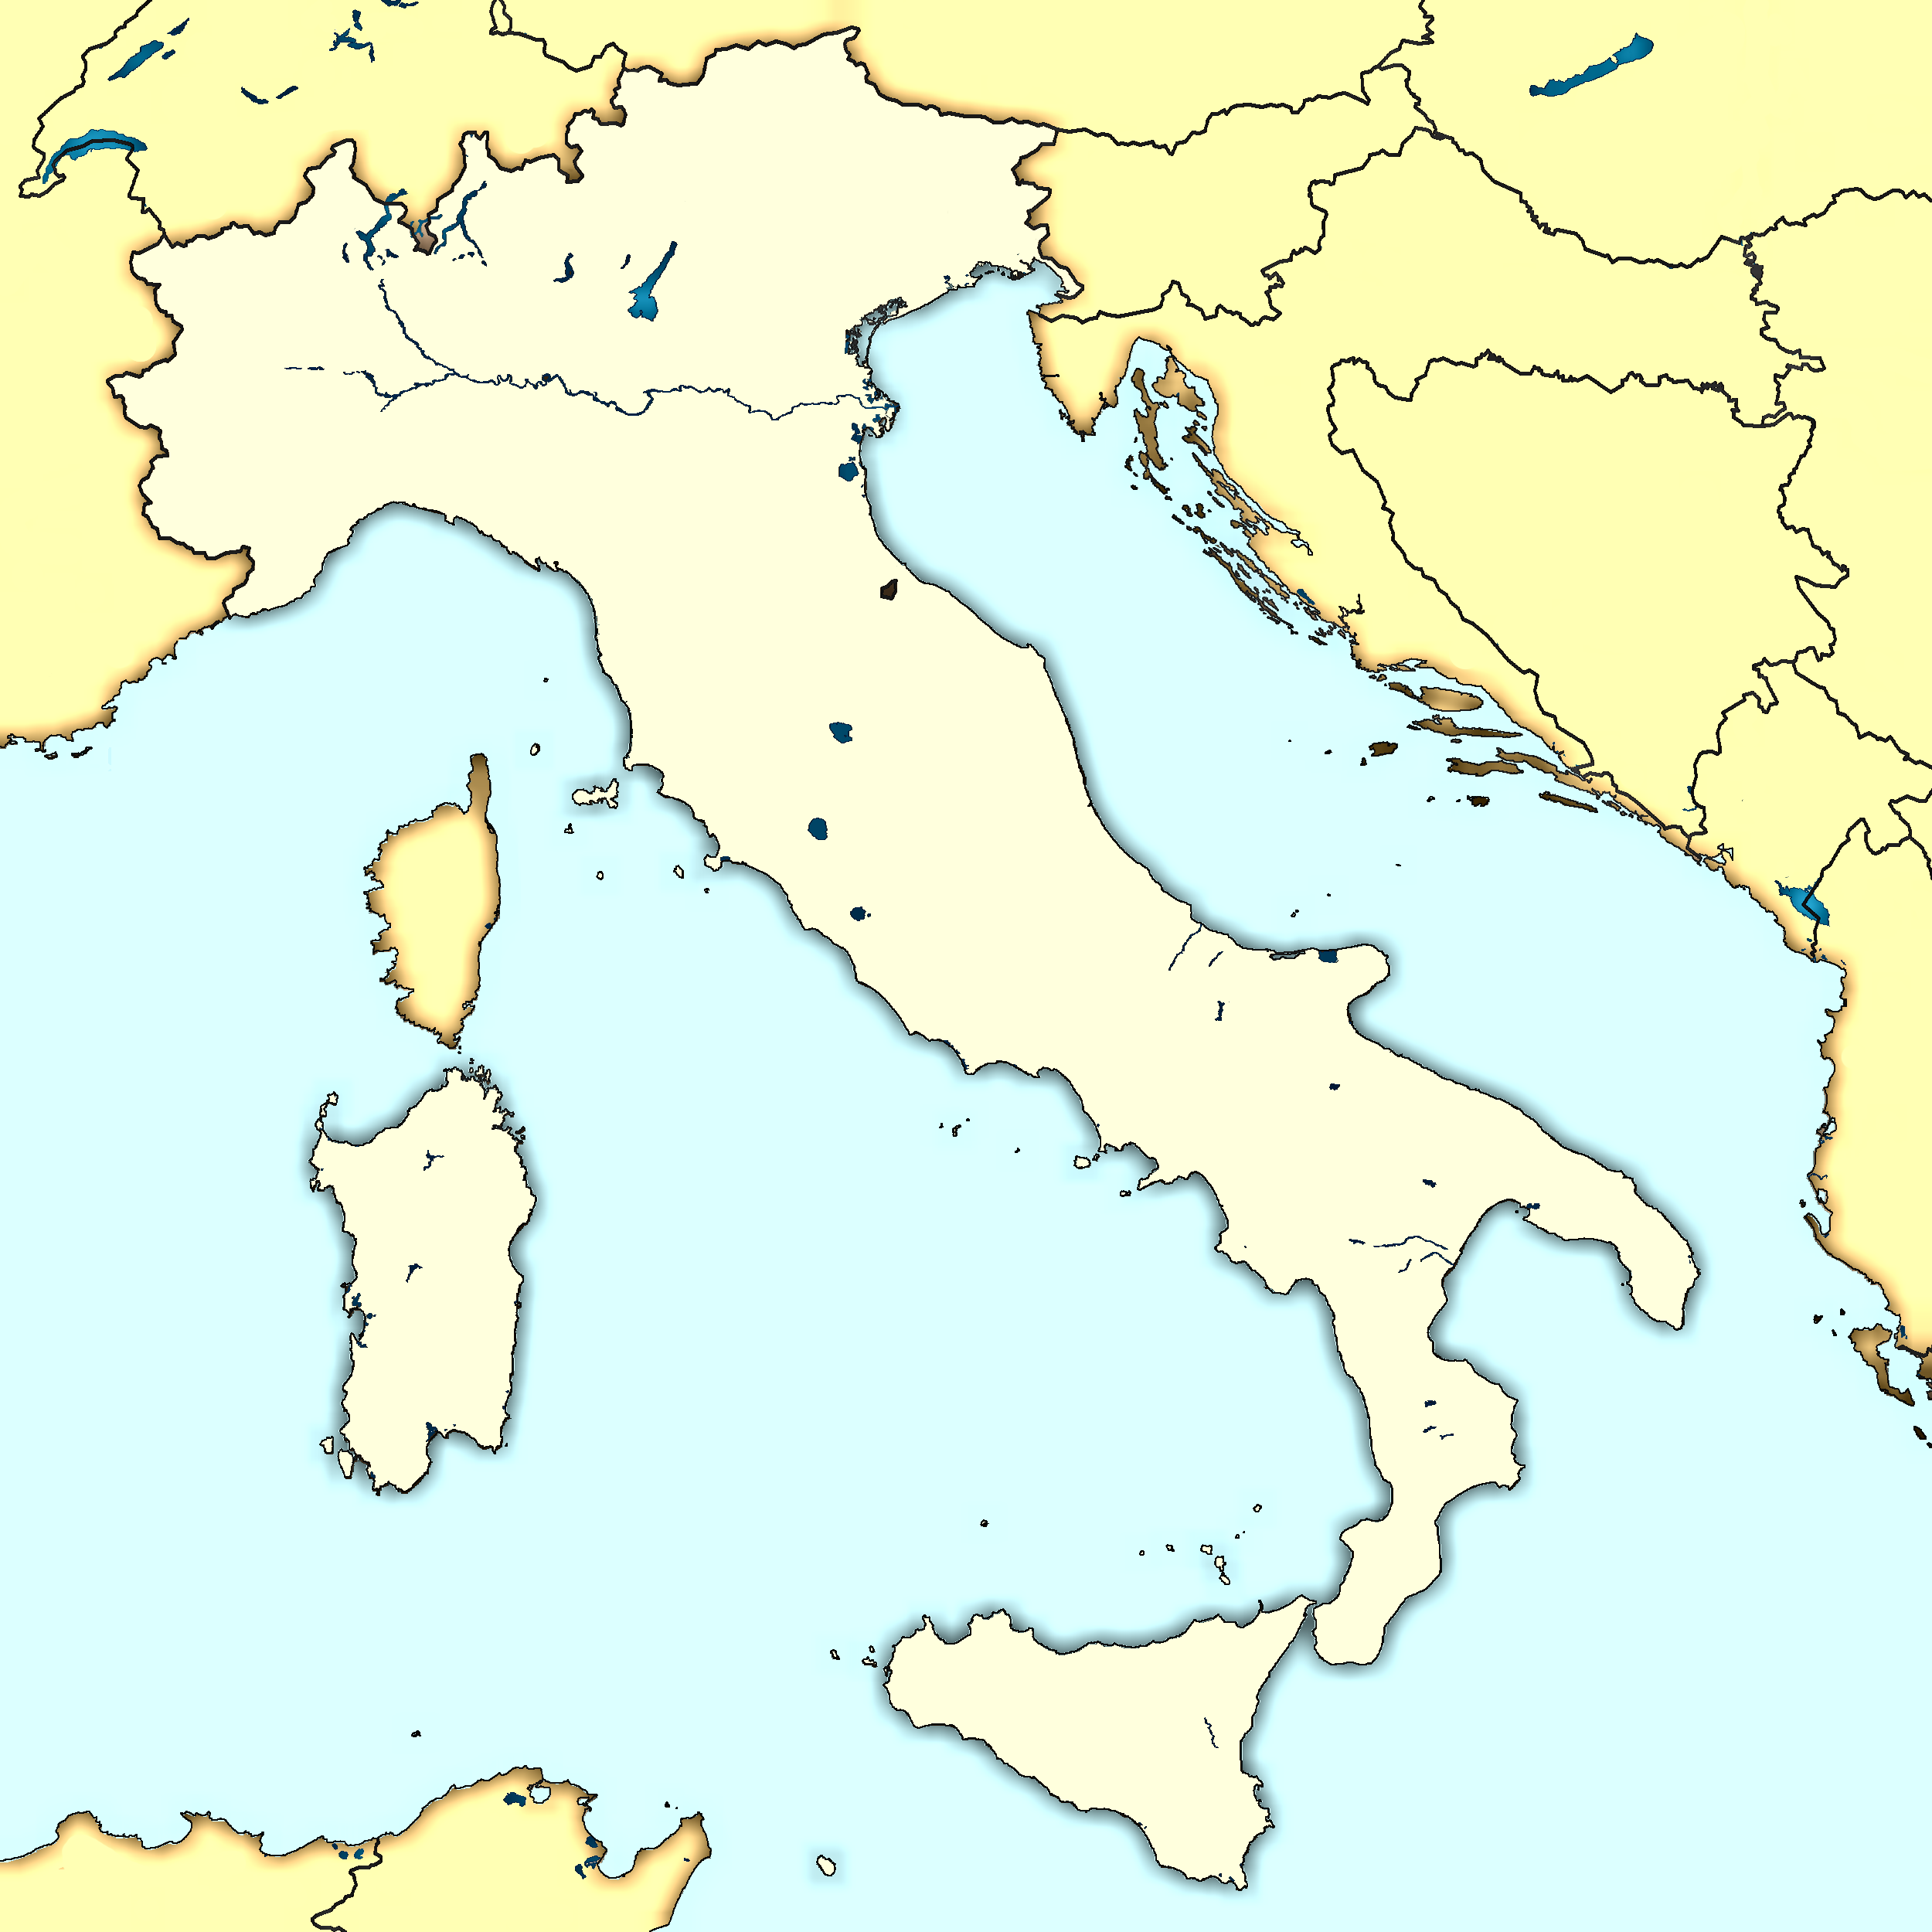 Datei:Italy map modern.png – Wikipedia